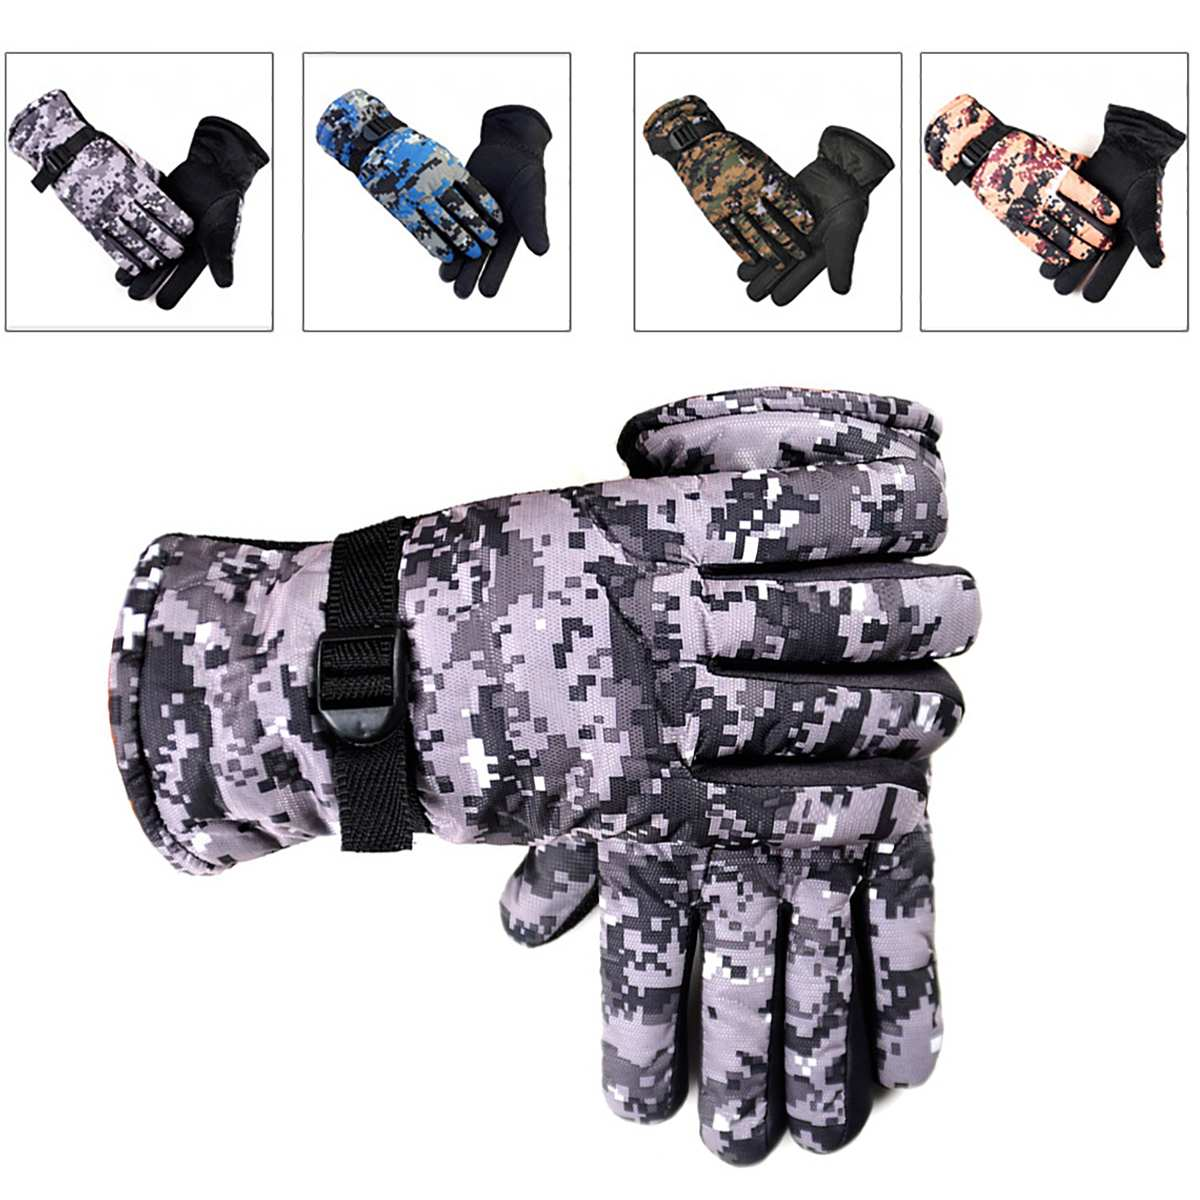 Motorcycle Gloves Cycling Winter Unisex Couple Models Windstopers Ski Gloves Camouflage Waterproof Camouflage Thicken For Hiking